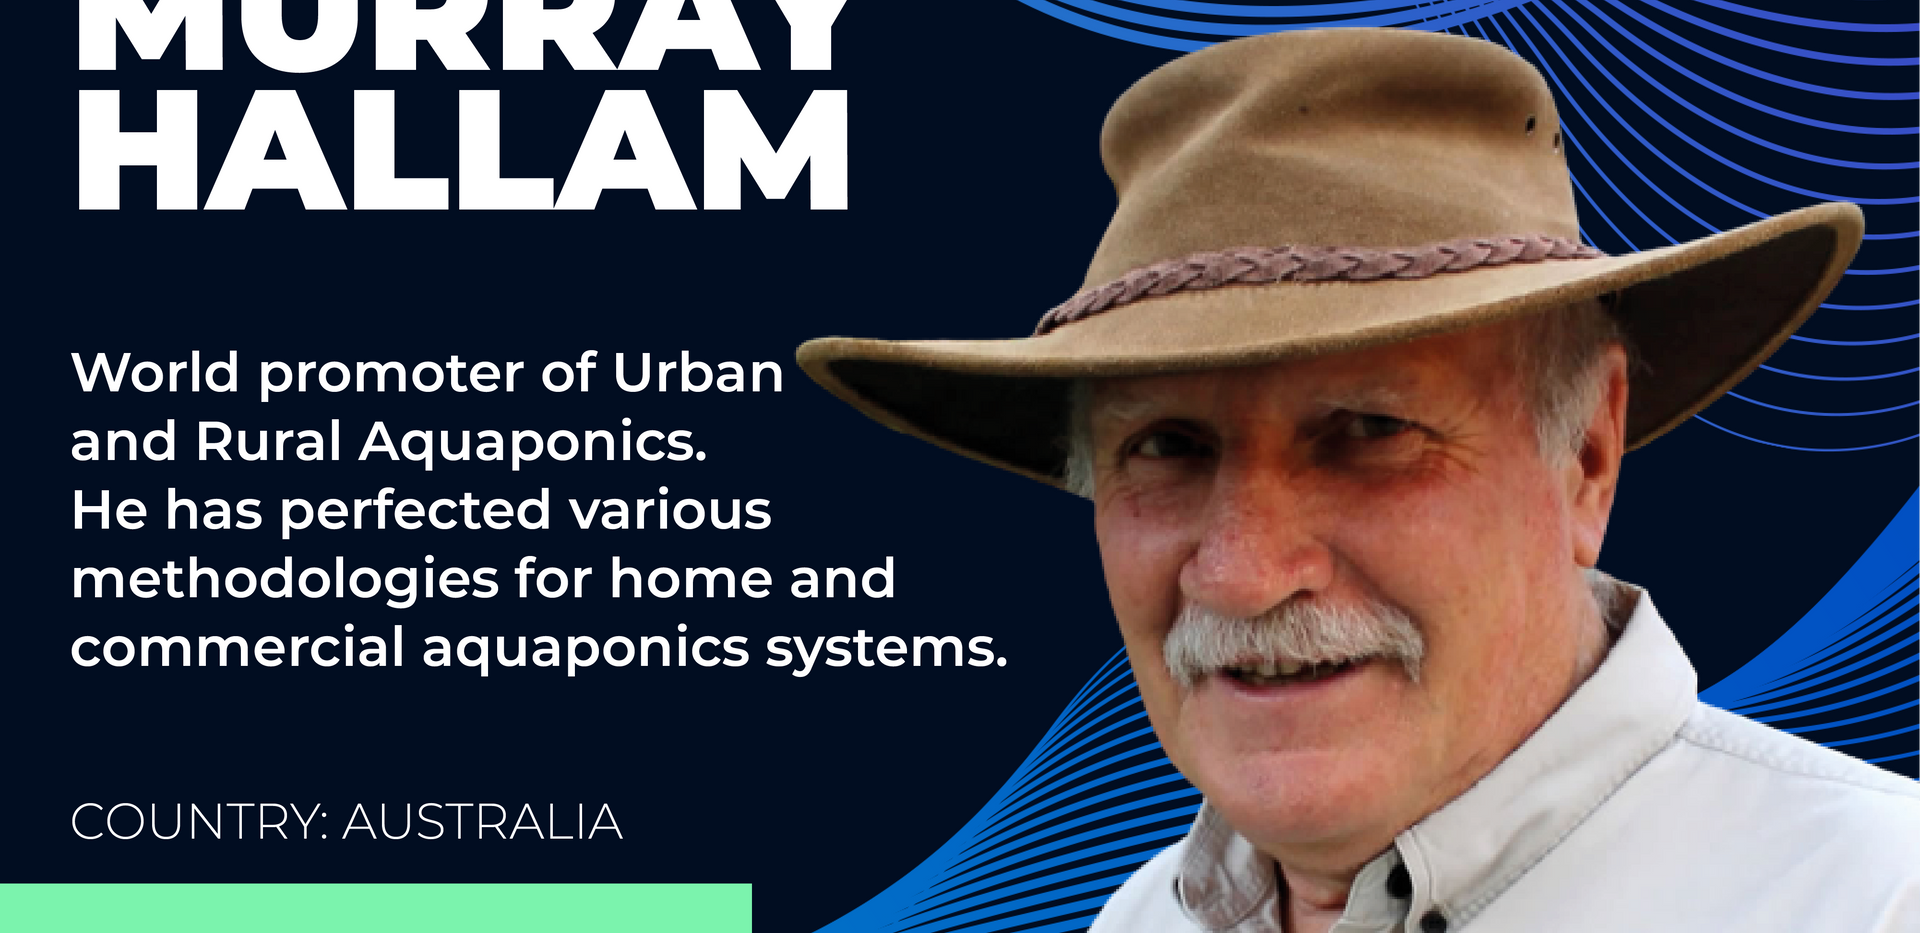 MURRAY HALLAM ENG.png